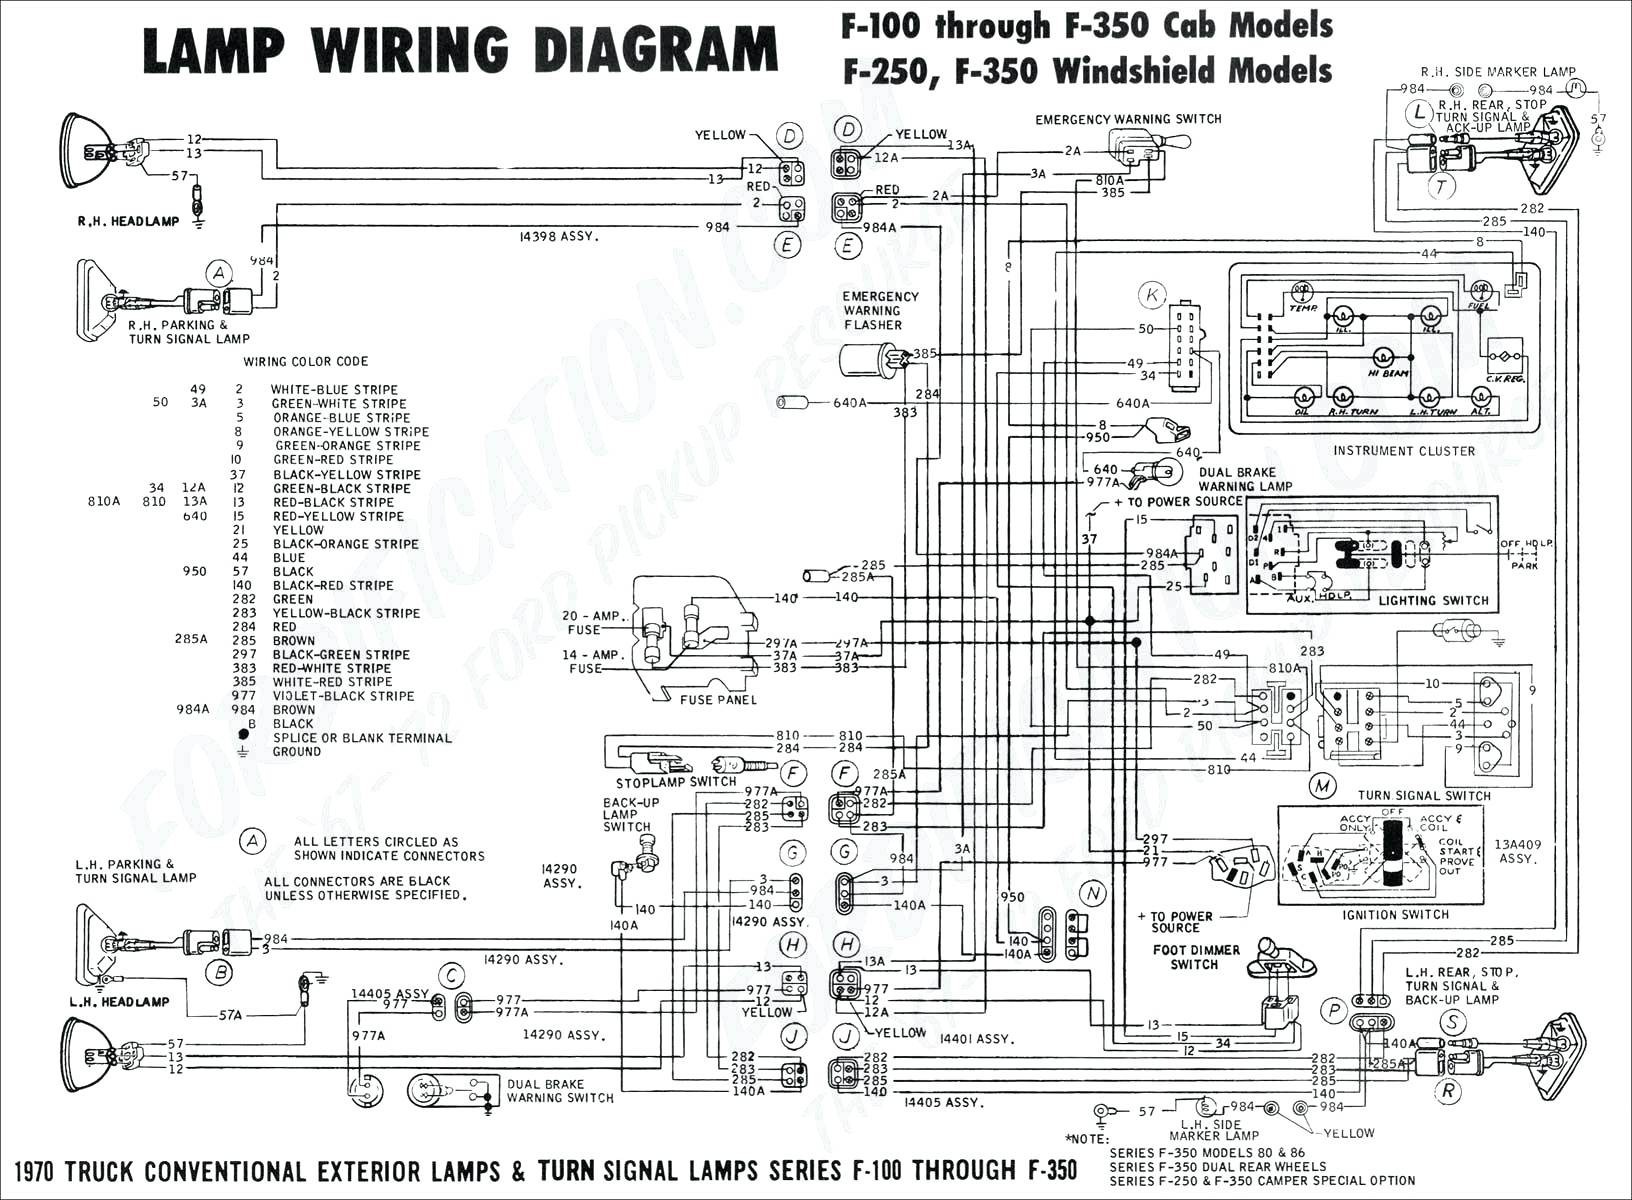 2005 Chevy Cavalier Engine Diagram 2002 Silverado Motor